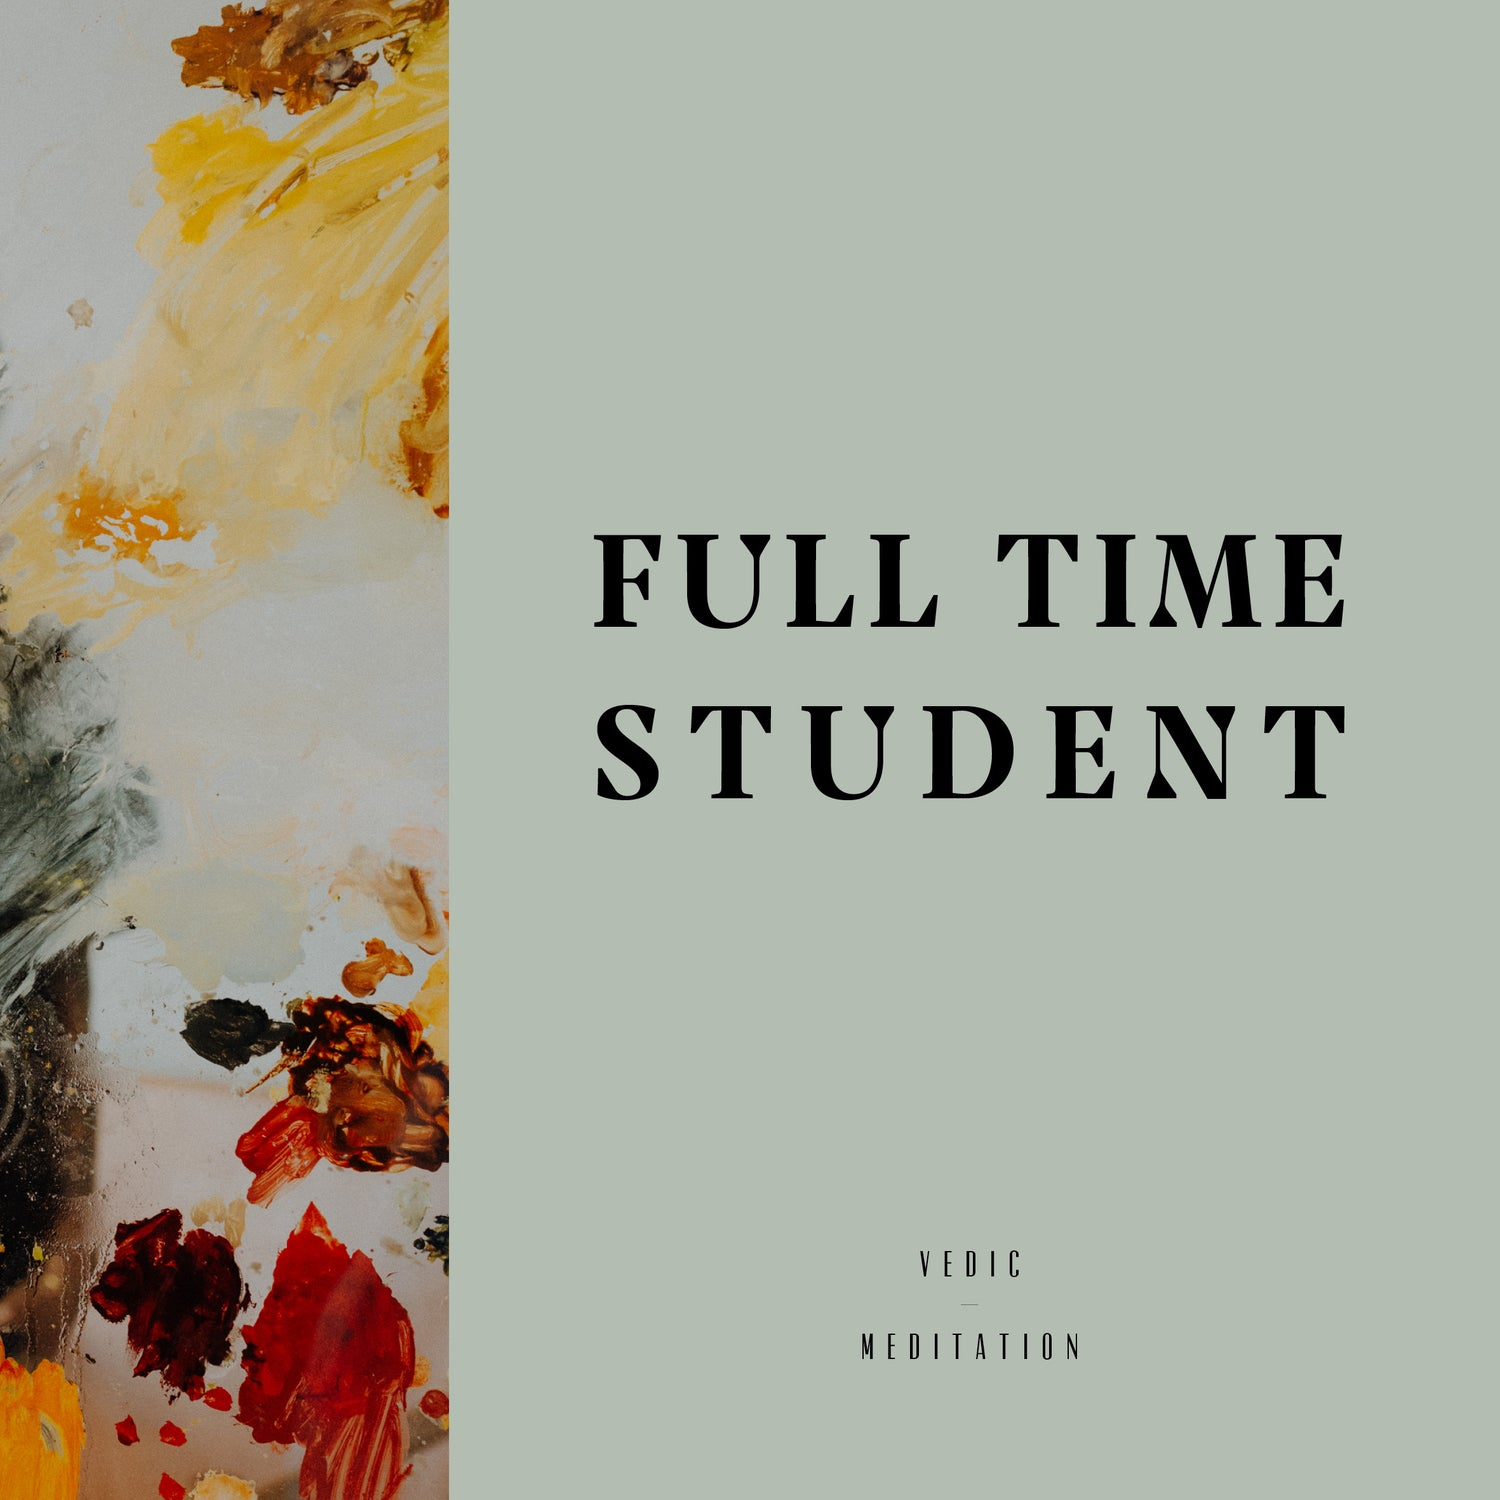 Image of Full Time Student